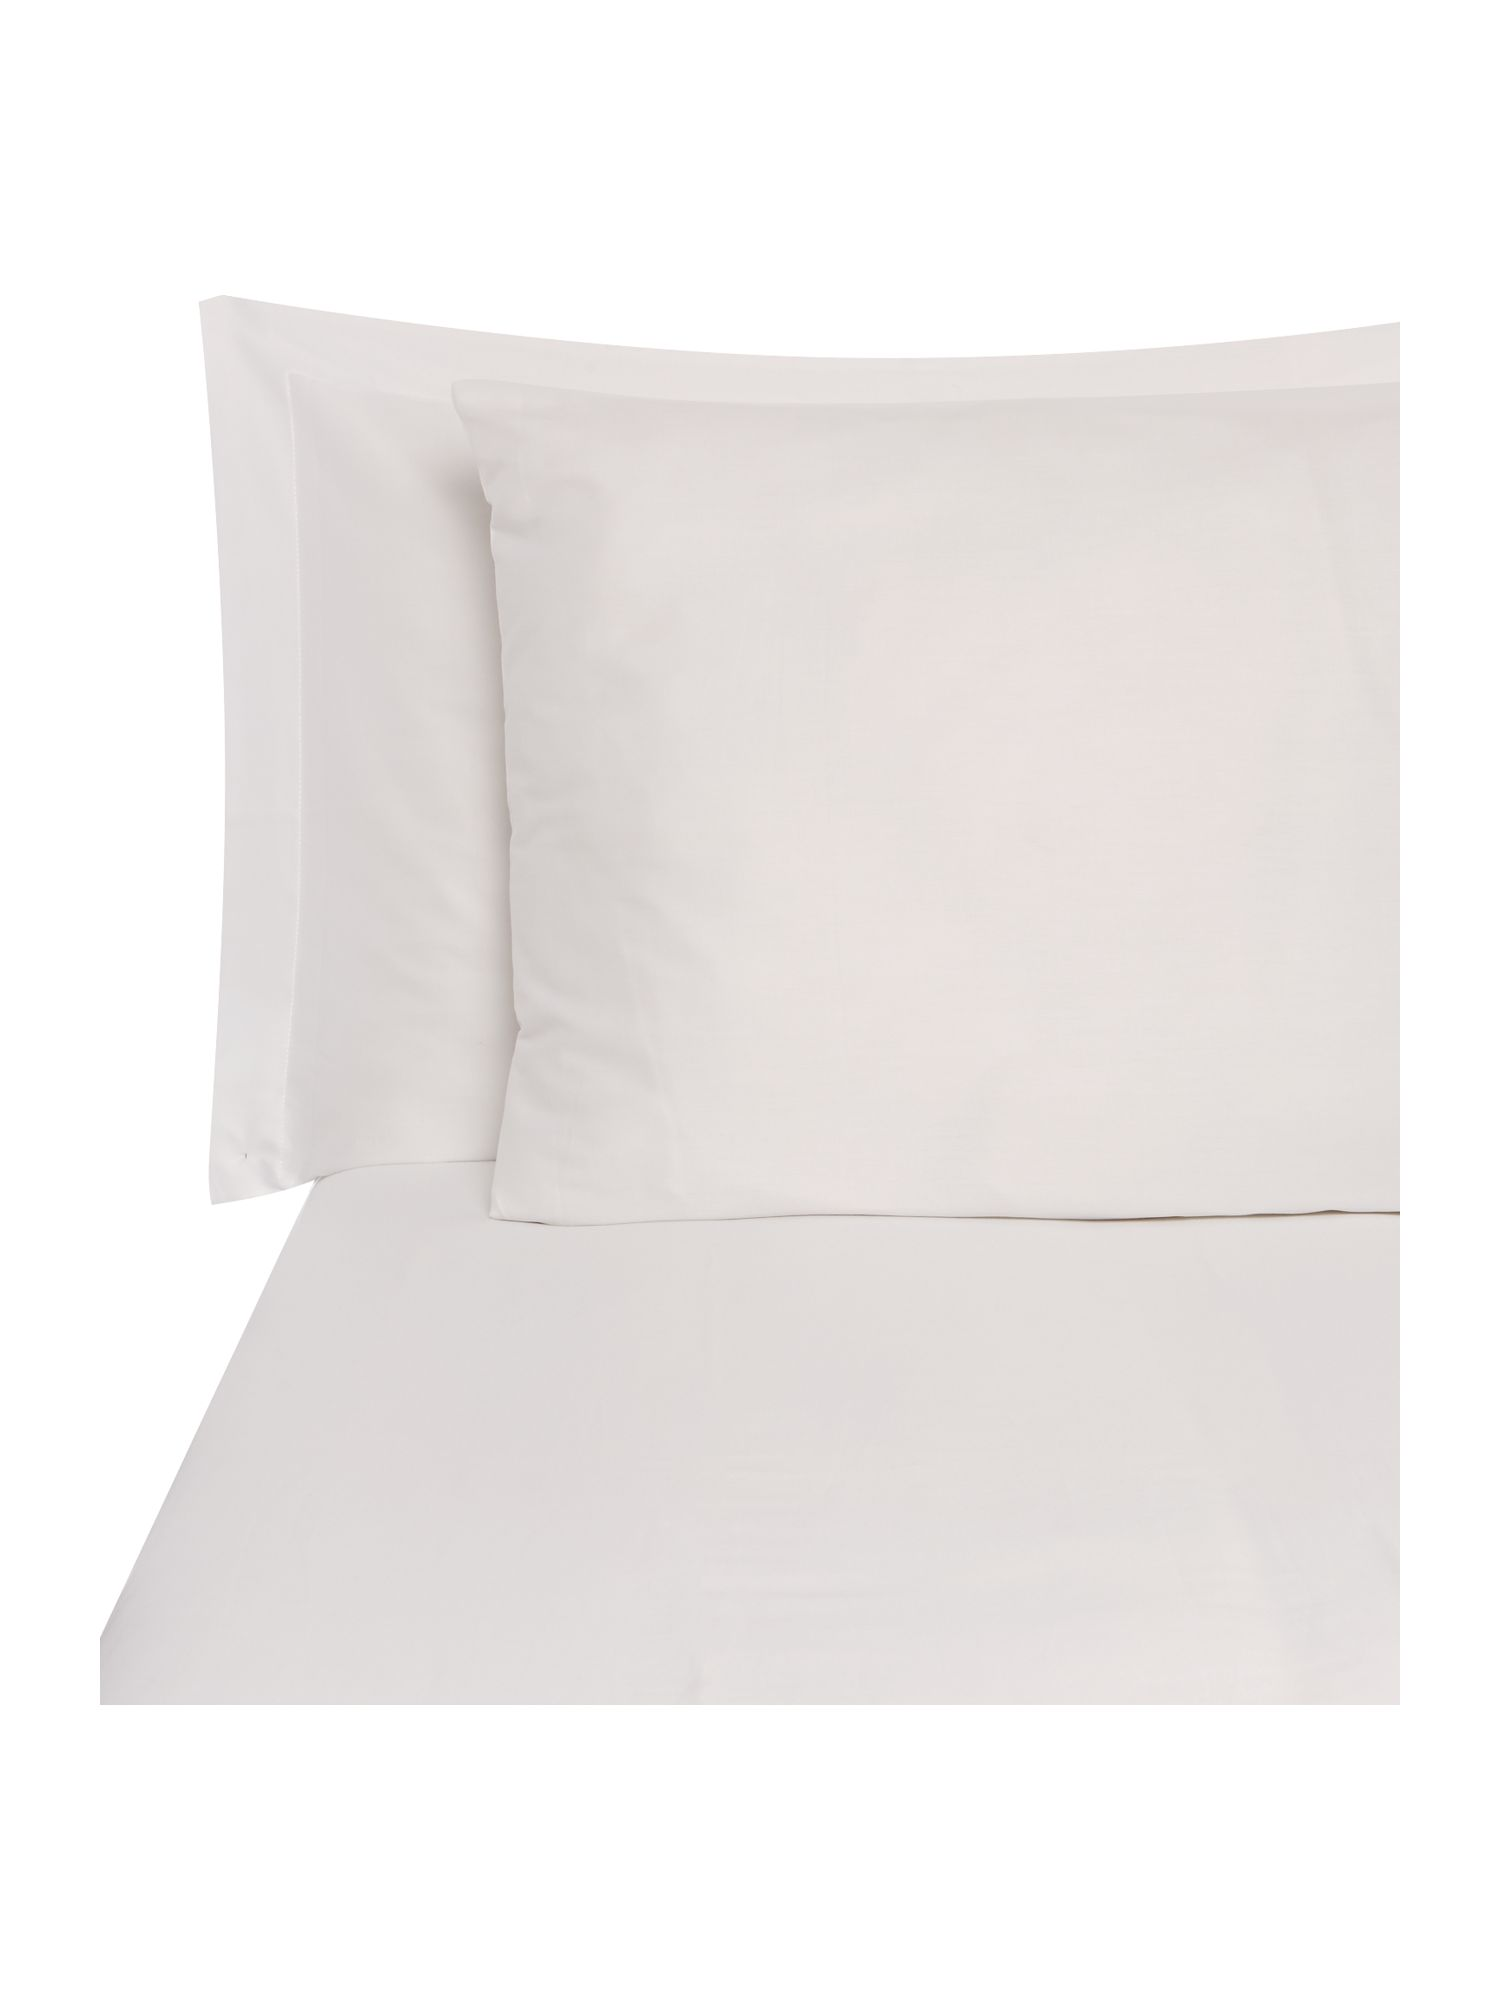 White flat sheet king